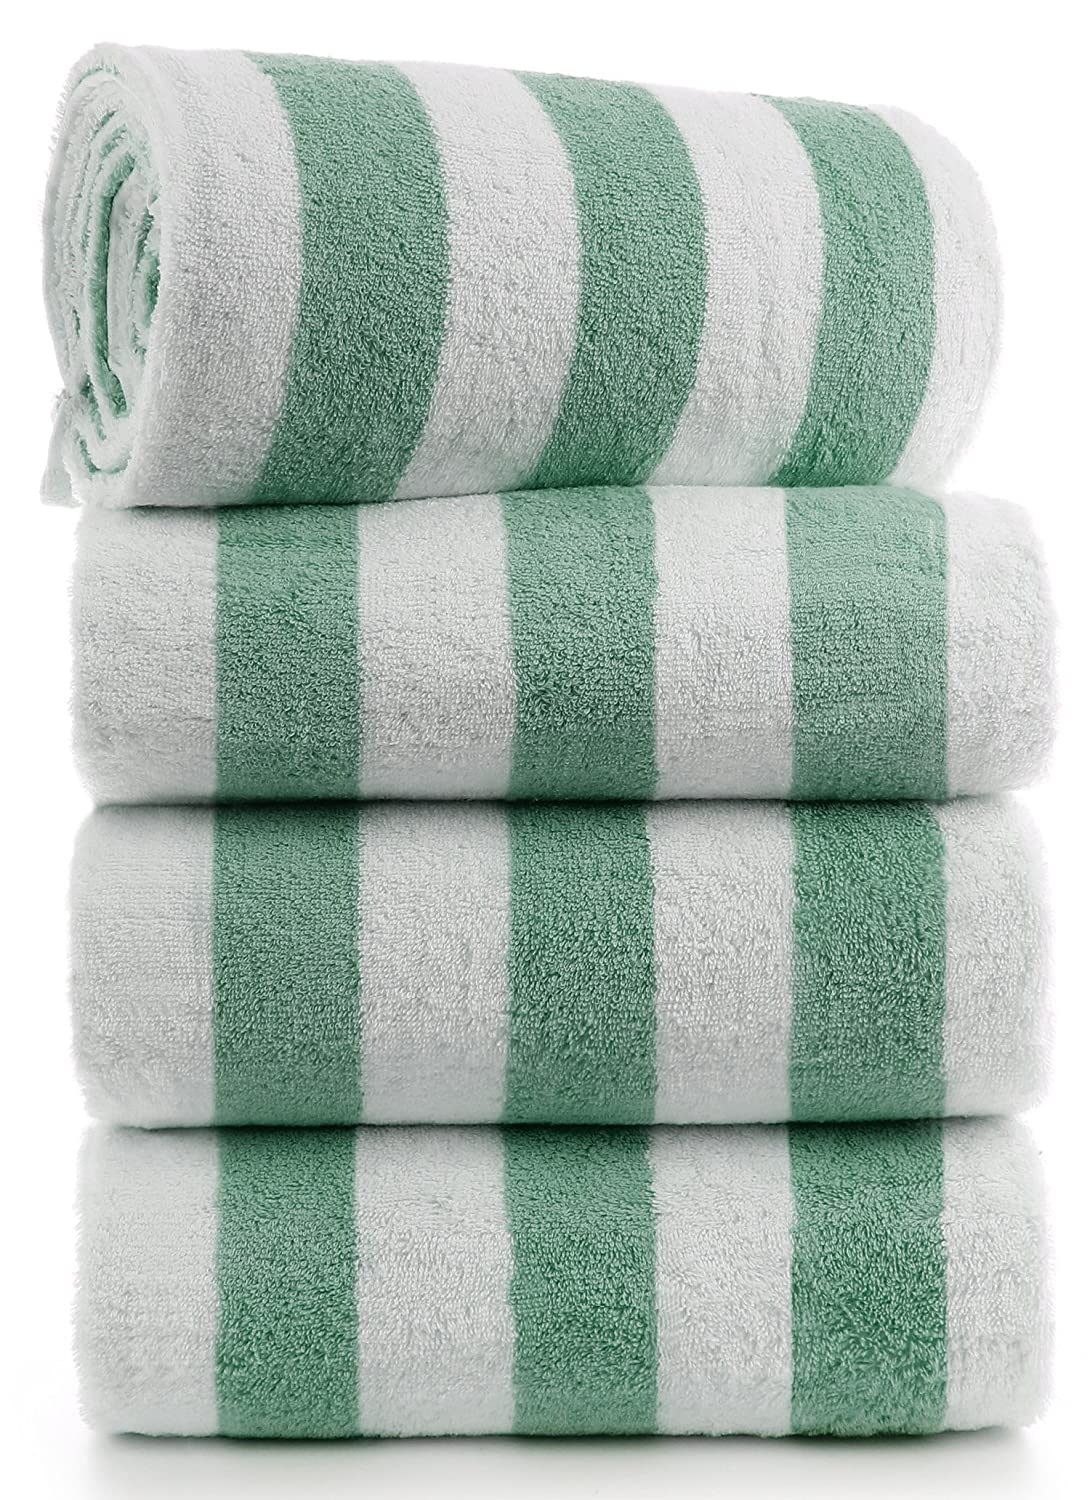 Oversize Turkish Beach Towel, Pool Towel with Cabana Stripe, Eco Friendly, 100% Turkish Cotton (35x70 inches) by Turkuoise Towel (4, Green)